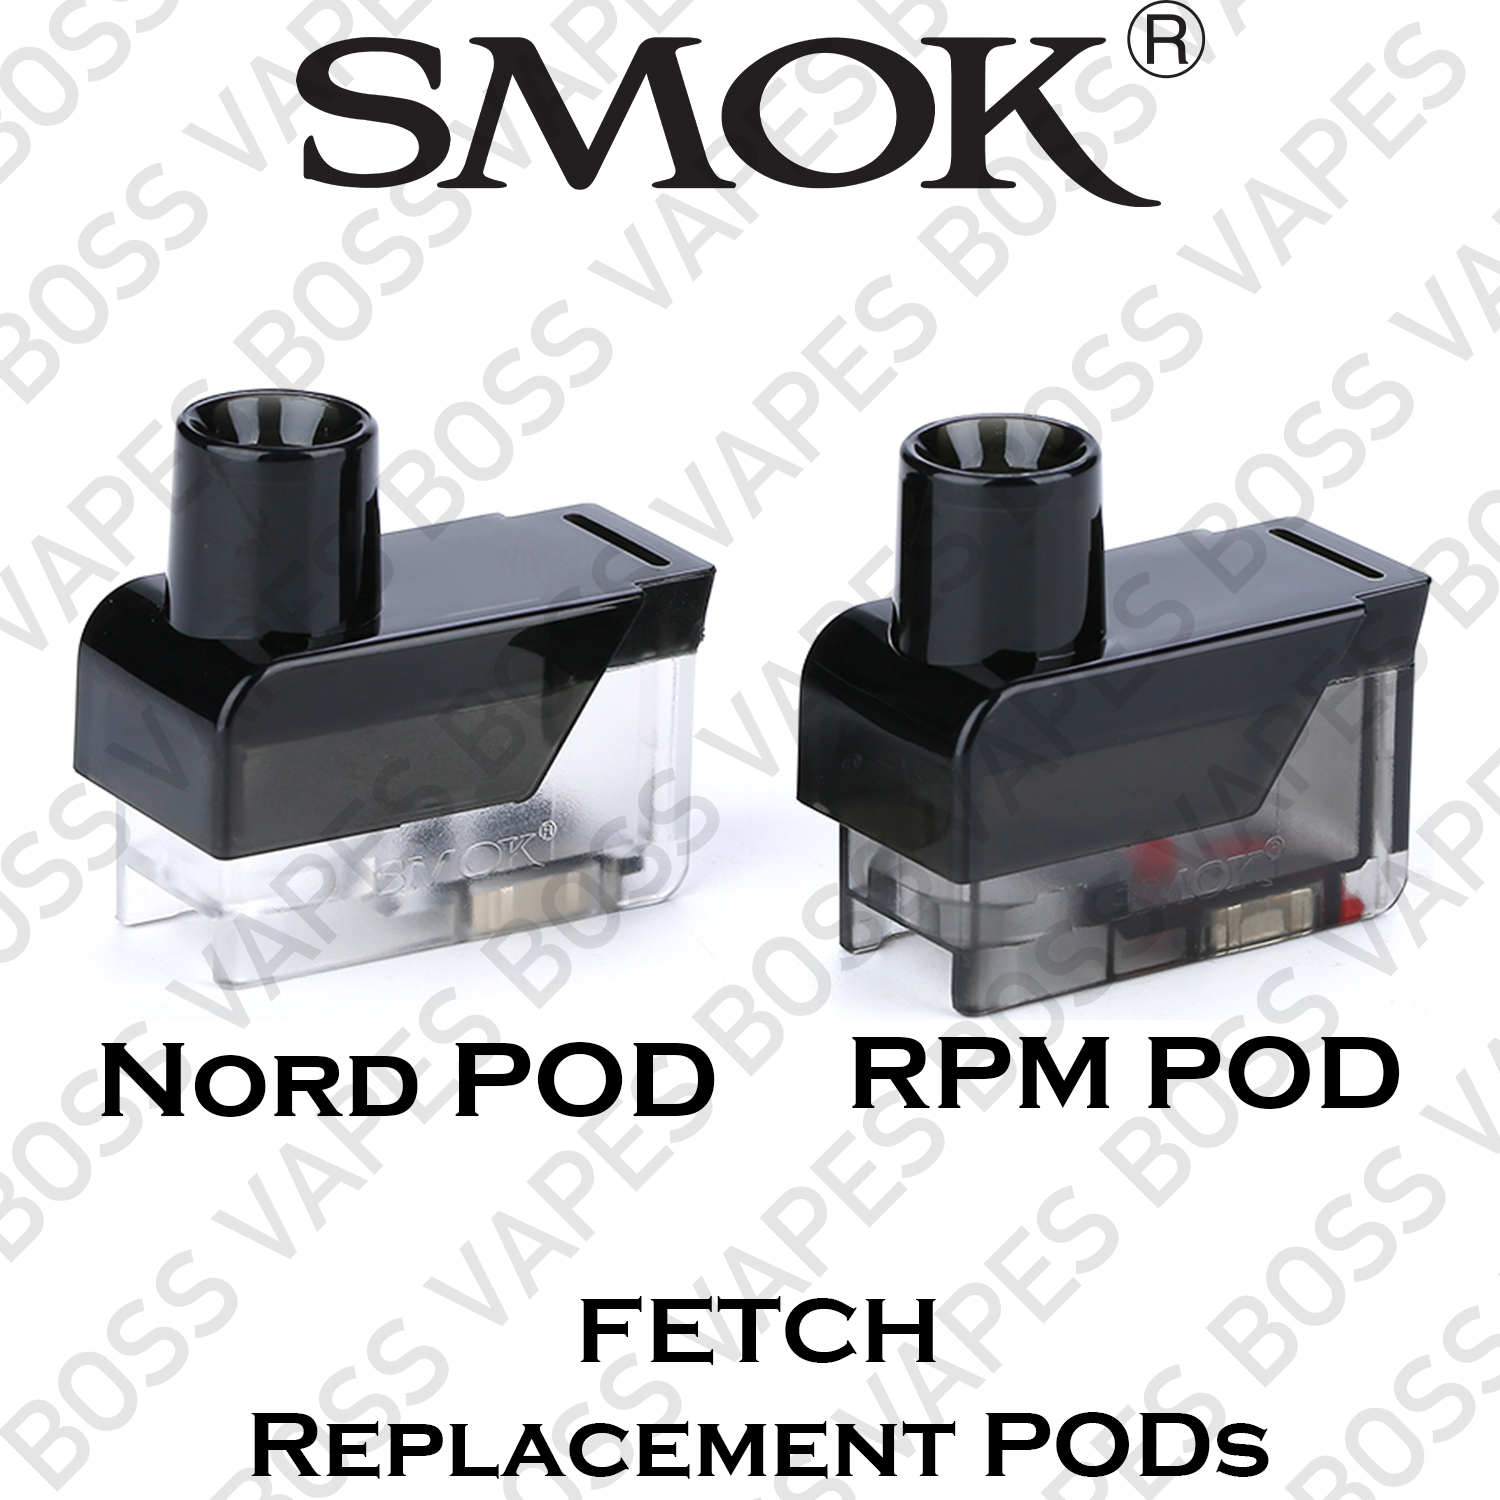 SMOK FETCH POD (COILS NOT INCLUDED) Price Per Pod